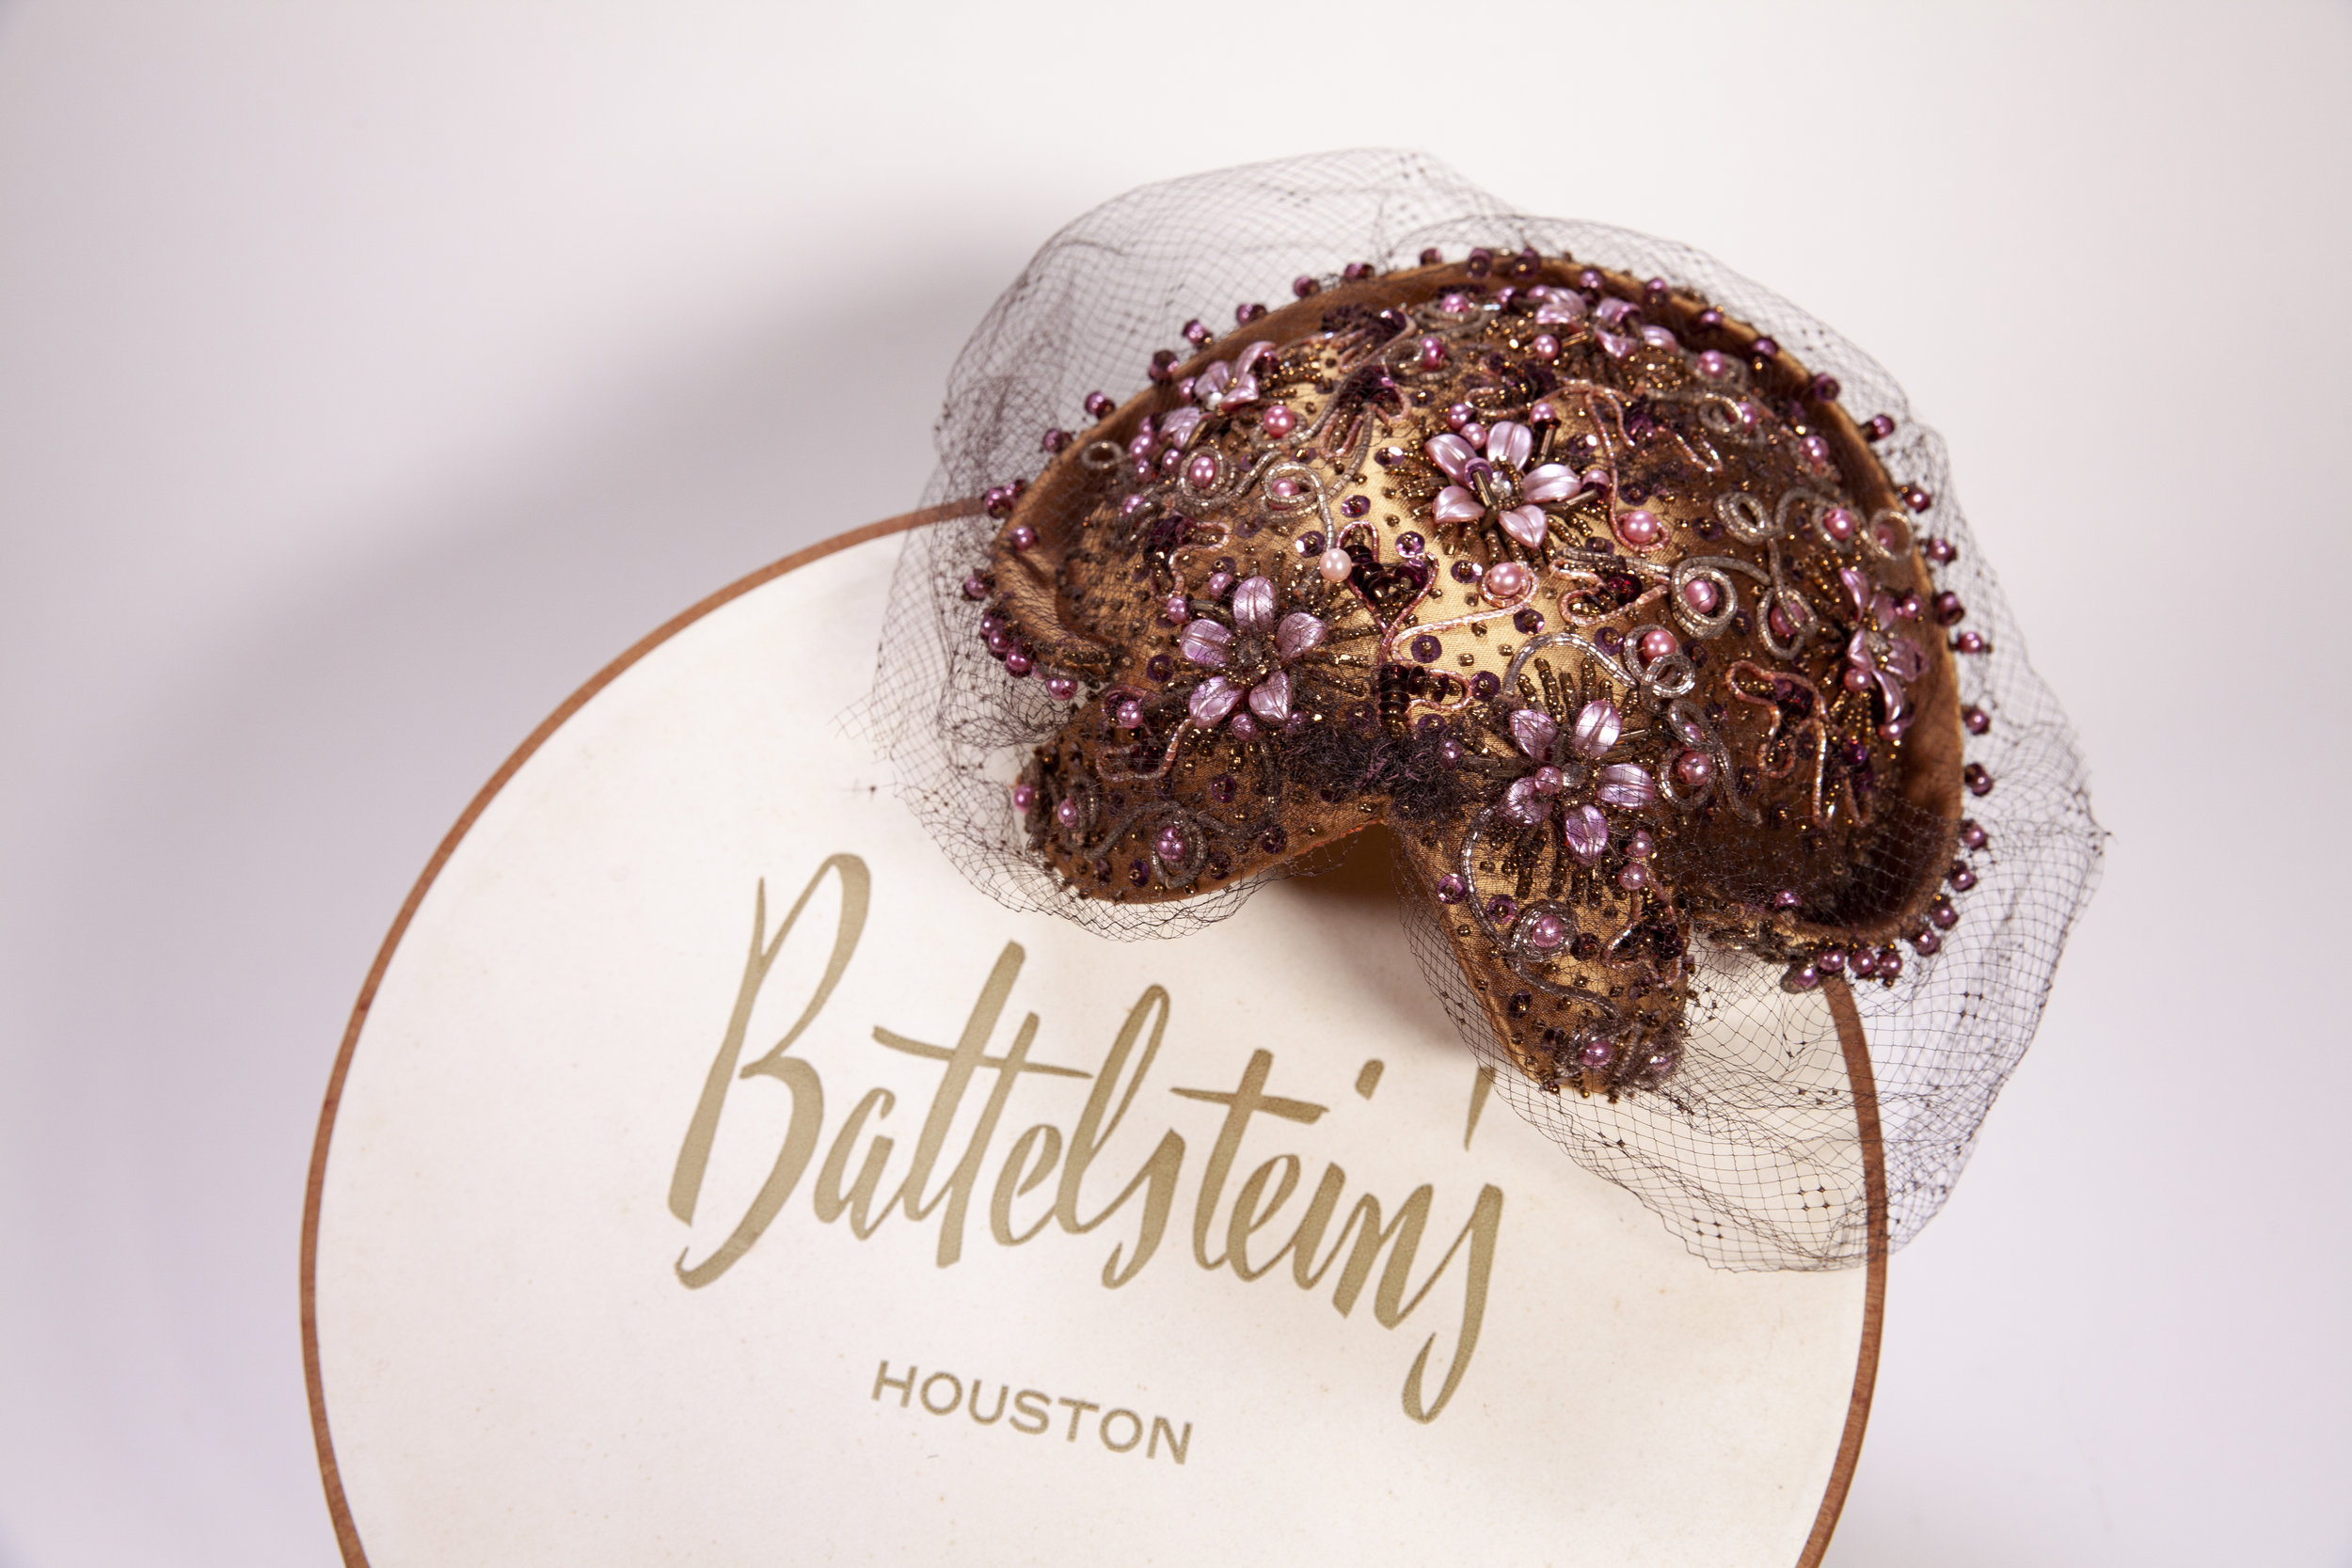 Battelstein's hats. By the mid-twentieth century, Houstonians were becoming more prosperous with the growth of the oil industry, and downtown was the leading area for retail shopping. An essential part of a middle-class woman's outfit at the time was a hat, which came in a colorful hatbox. Permanent Collection of The Heritage Society